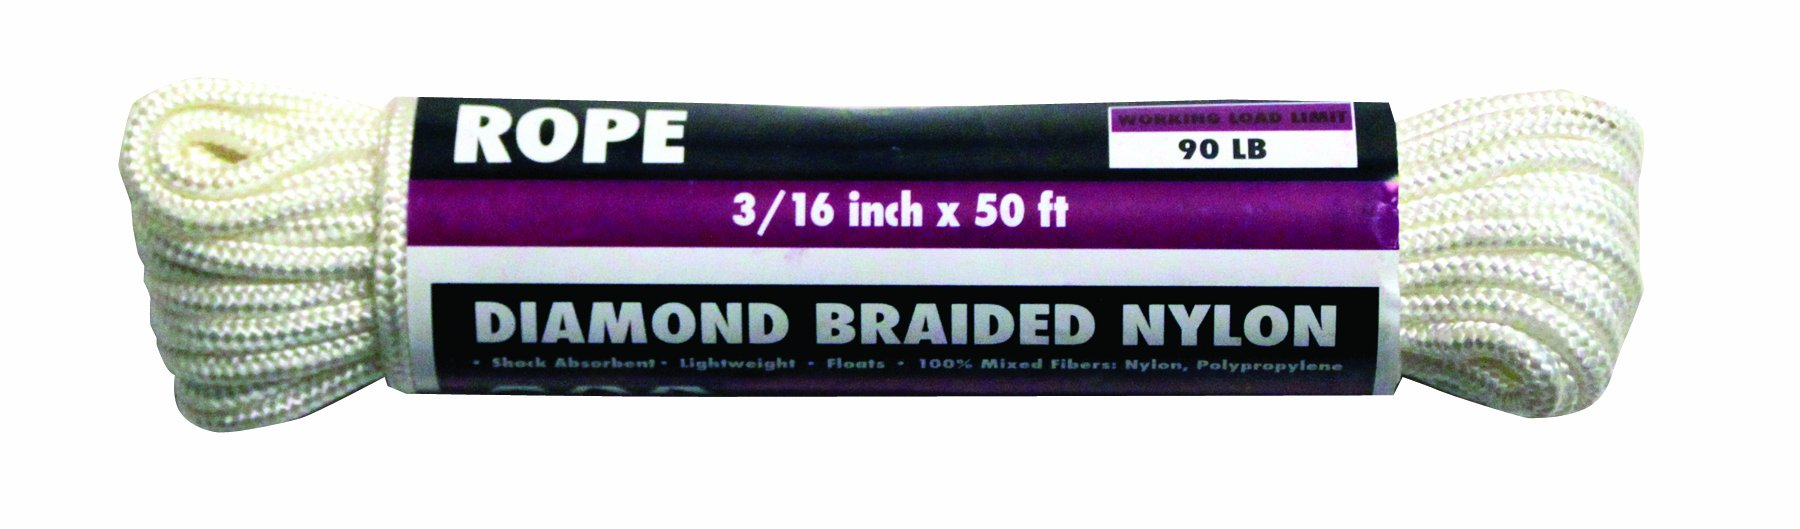 Rope King DBN-31650 Diamond Braided Nylon Rope 3/16 inch x 50 feet